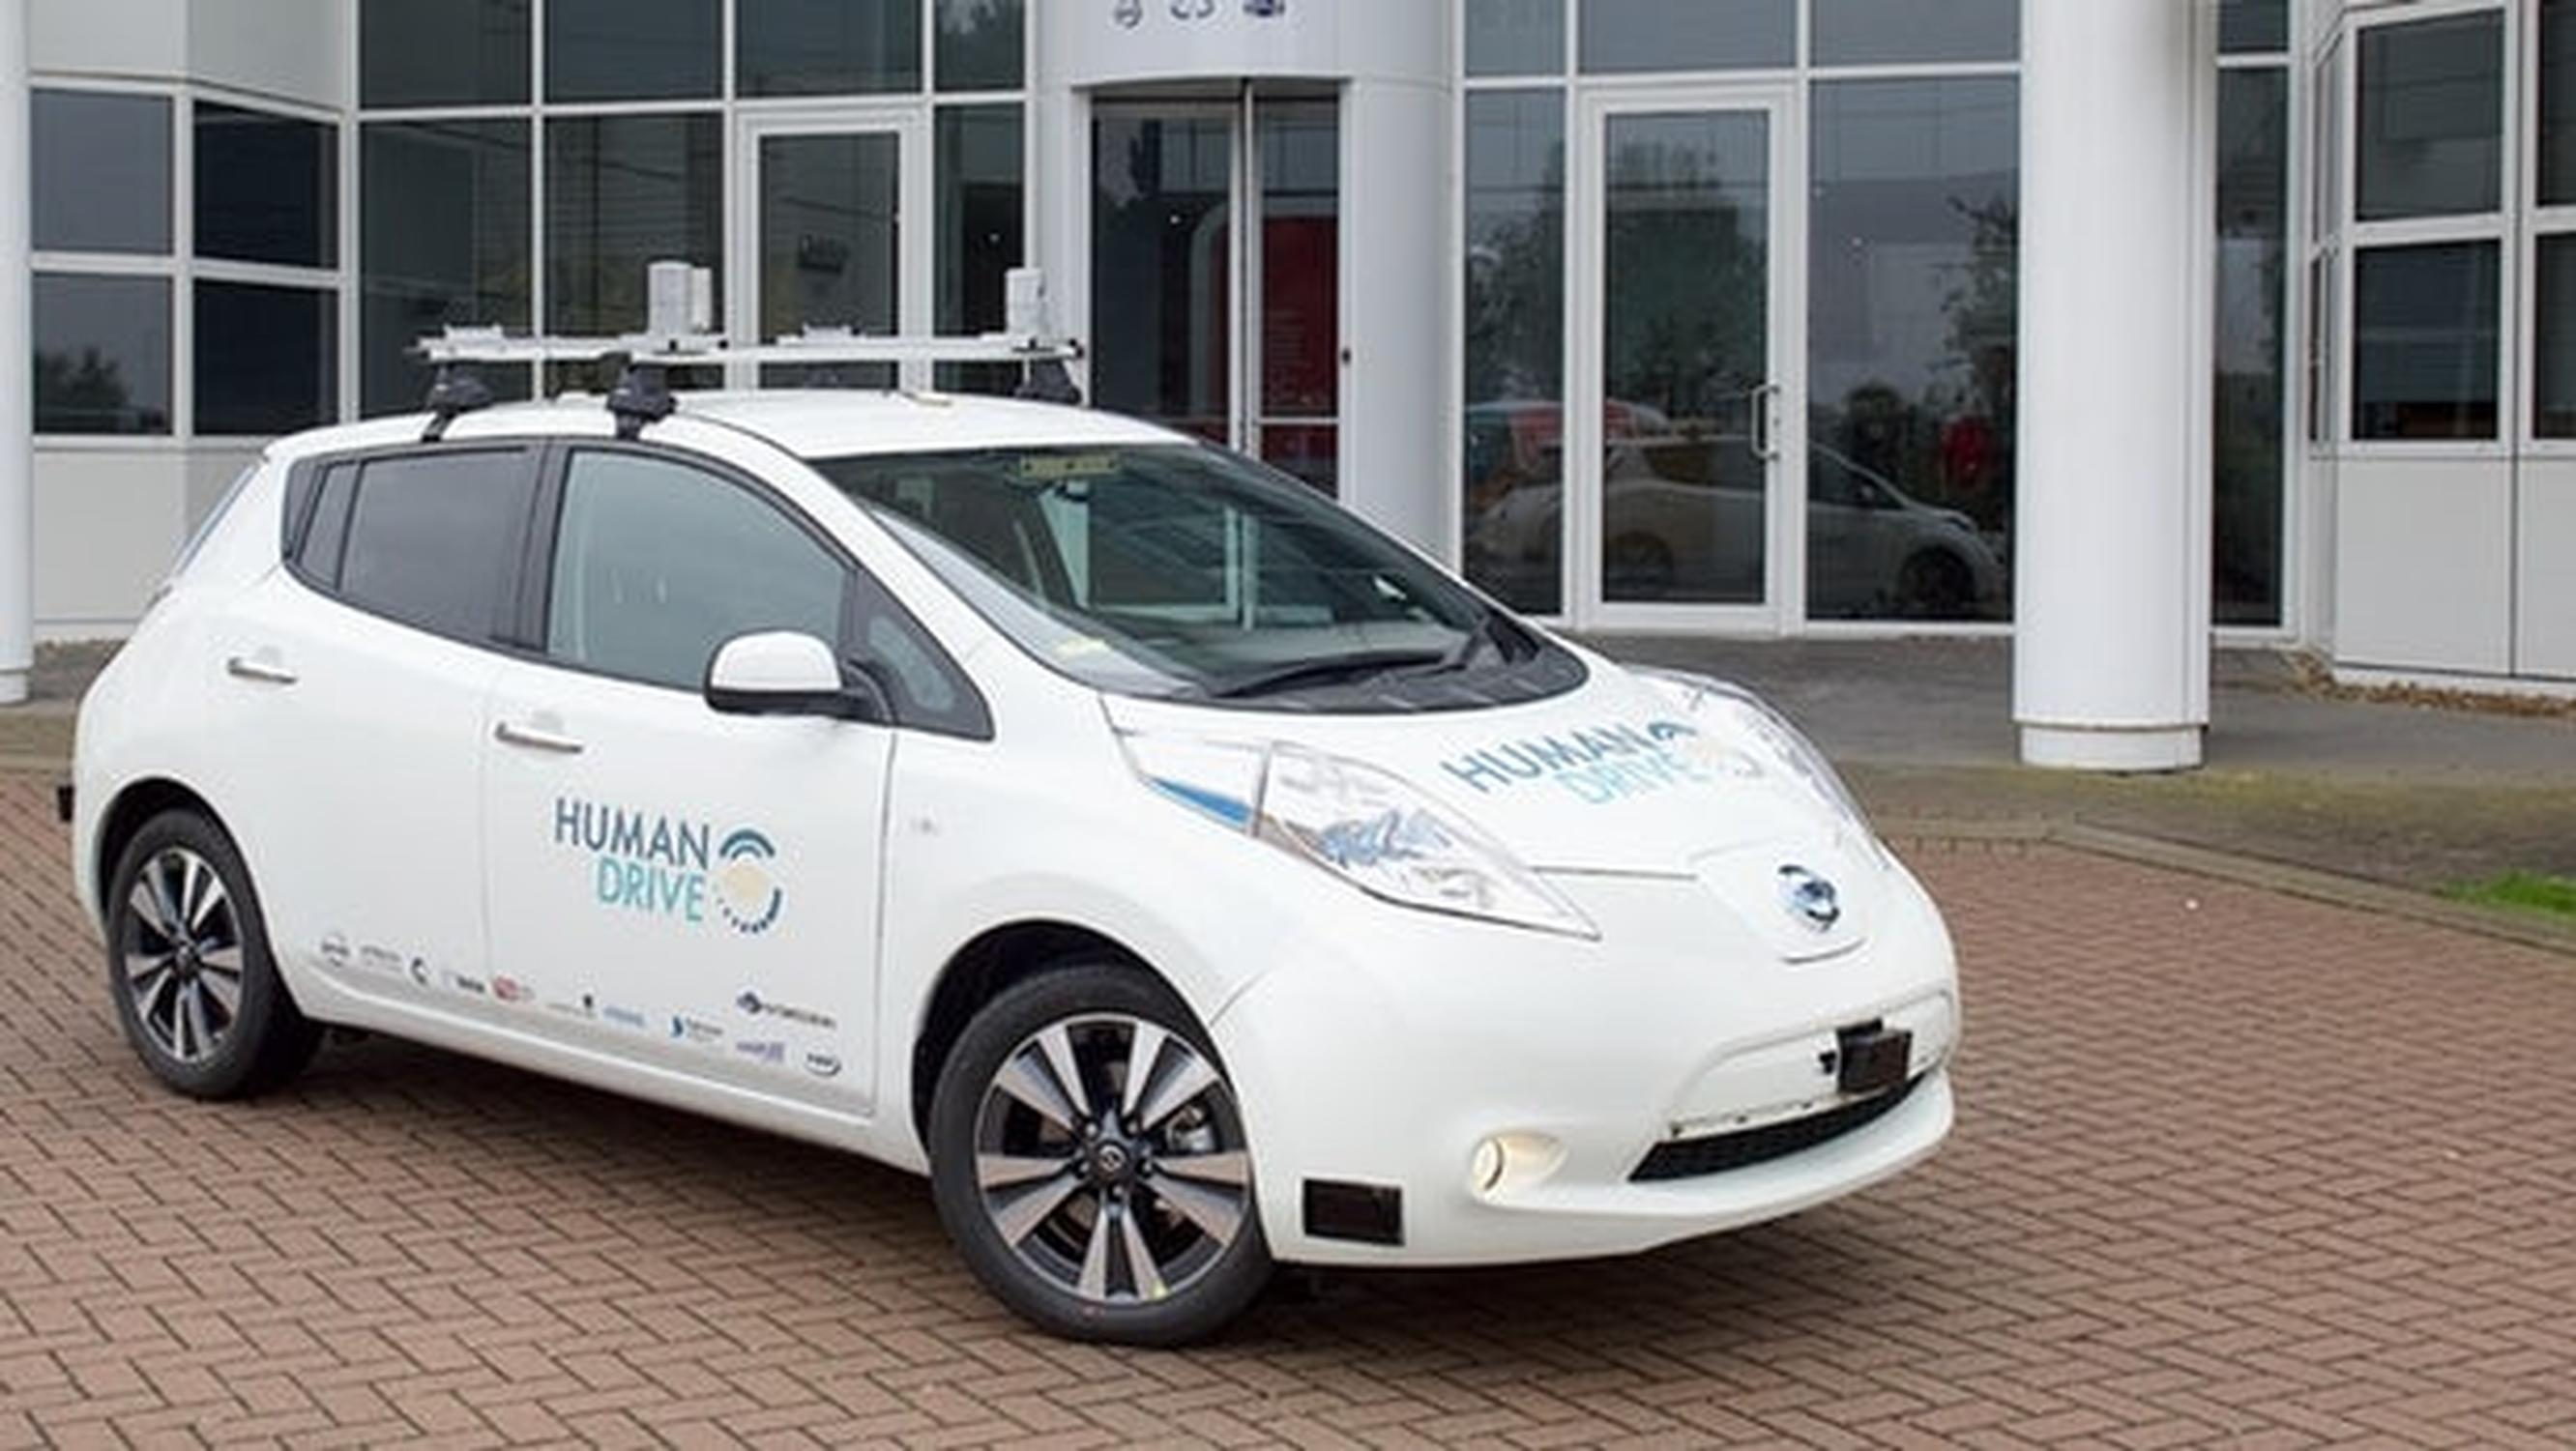 Autonomous car project seeks to emulate natural human driving